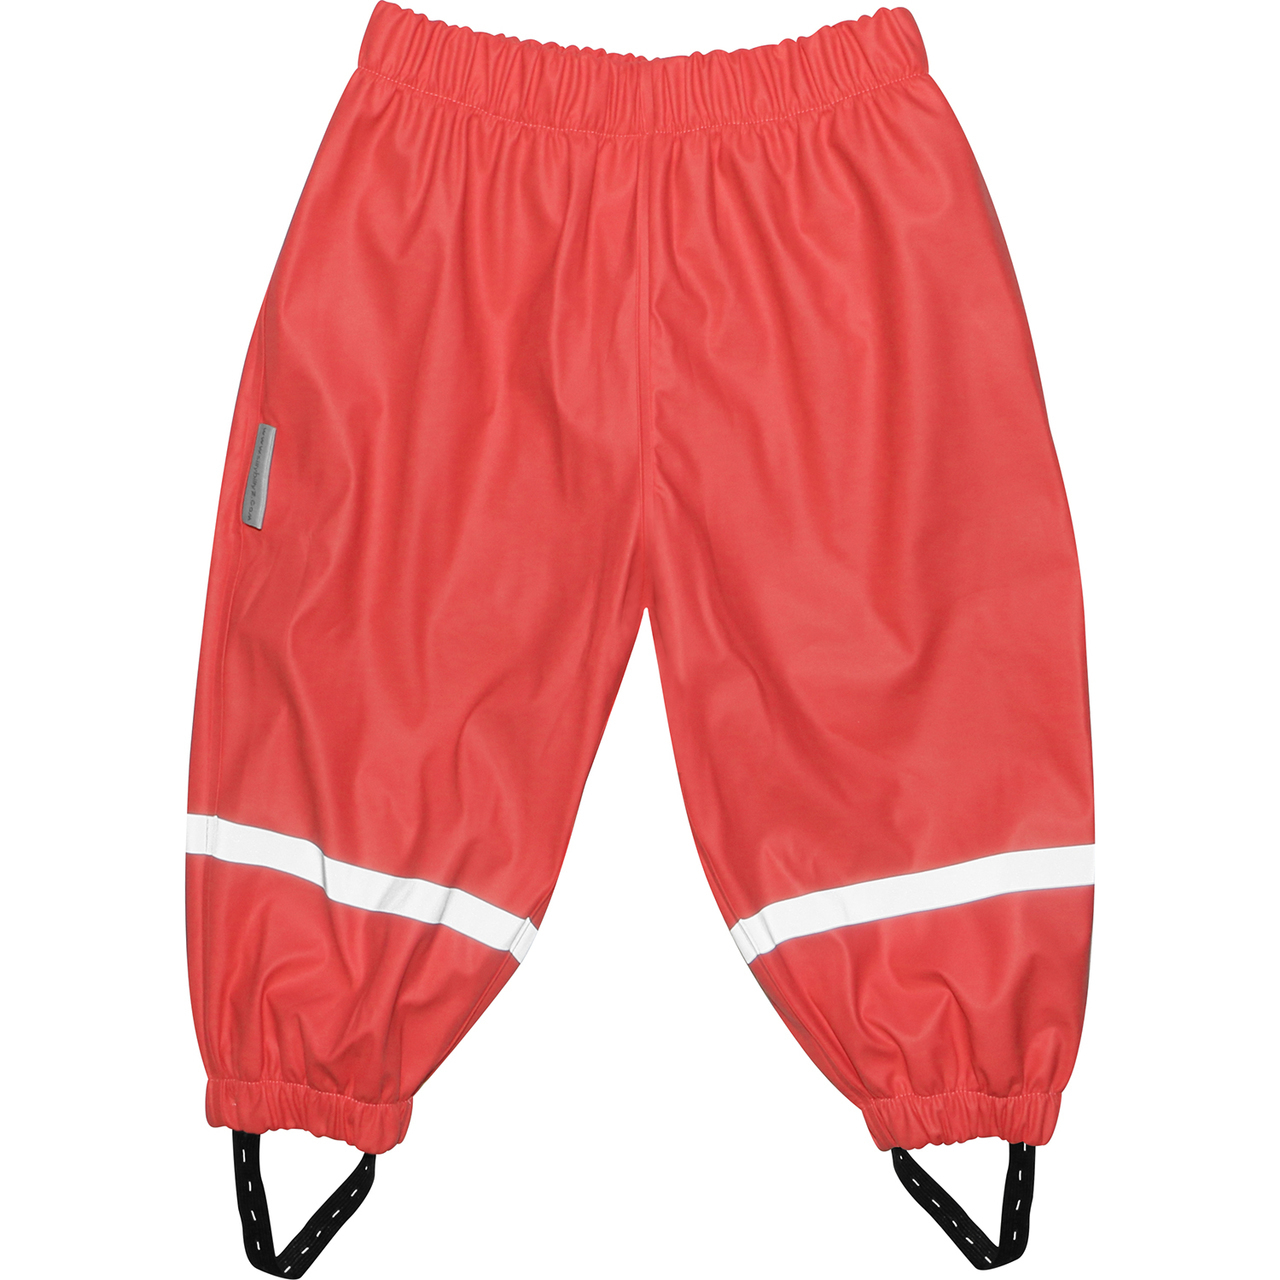 Silly Billyz Waterproof Pants - Red (3-4 Yrs) image